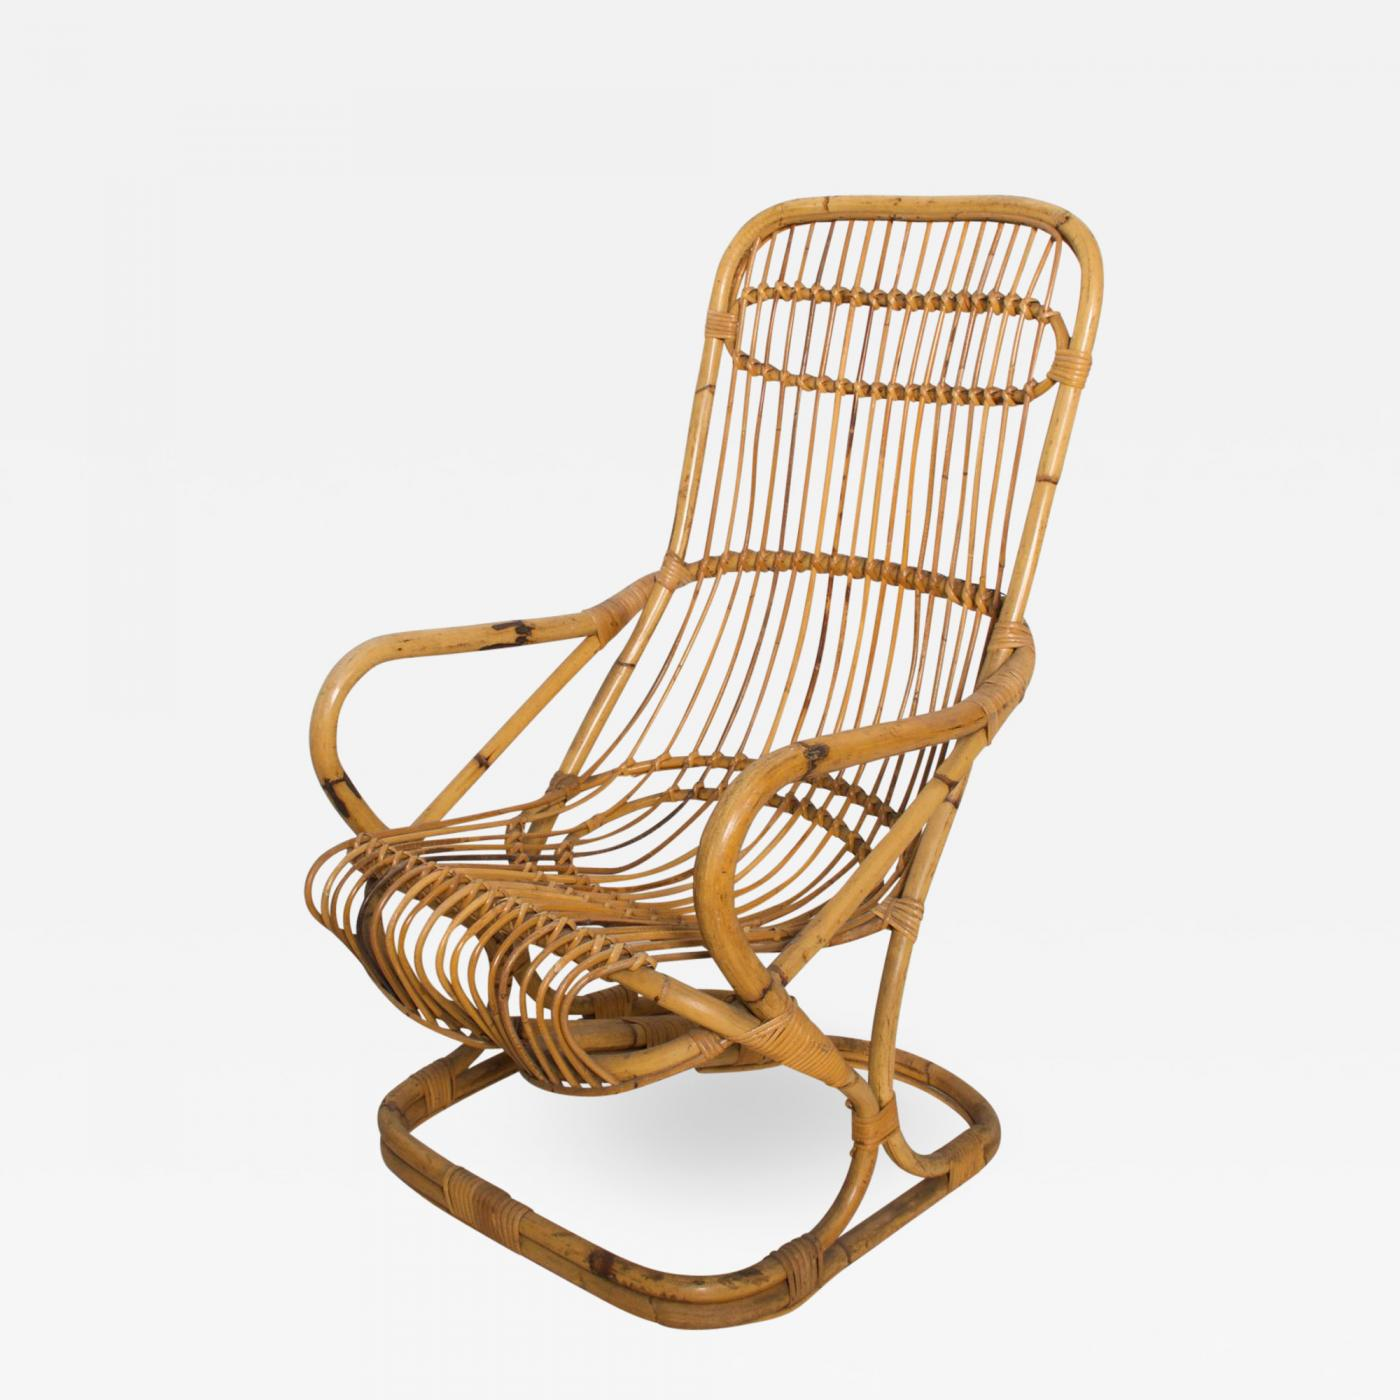 Picture of: Tito Agnoli Mid Century Modern By Tito Agnoli Tall Wicker Lounge Chair Italy